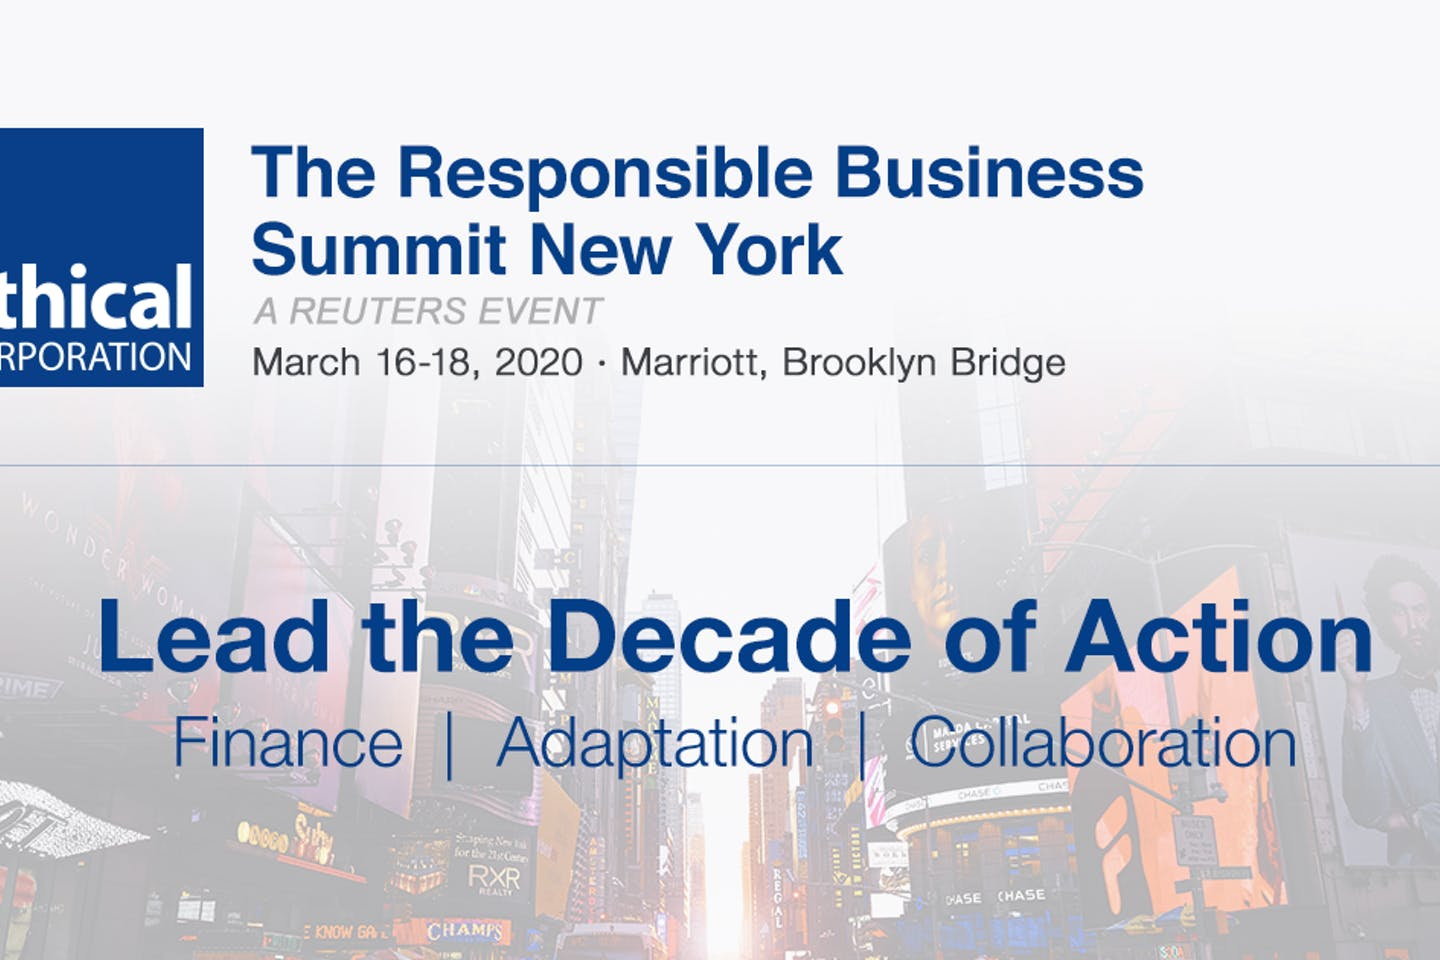 The Responsible Business Summit New York returns for 2020